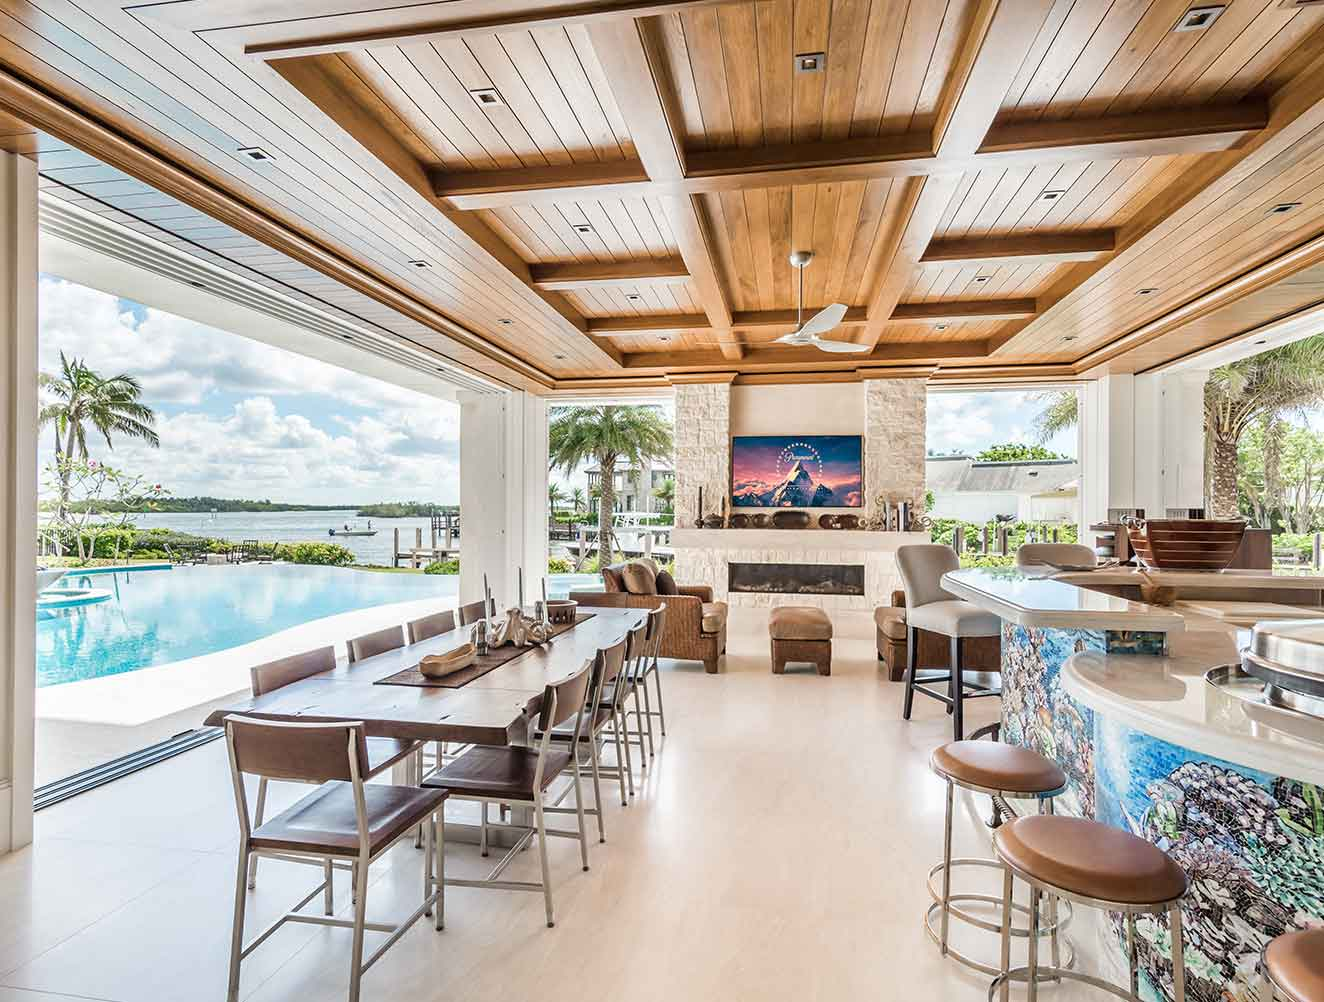 Portfolio of Leisure Spaces in Naples, Florida Luxury Homes. Leisure Outdoor Covered Family Room. Designed by Kukk Architecture & Design Naples.